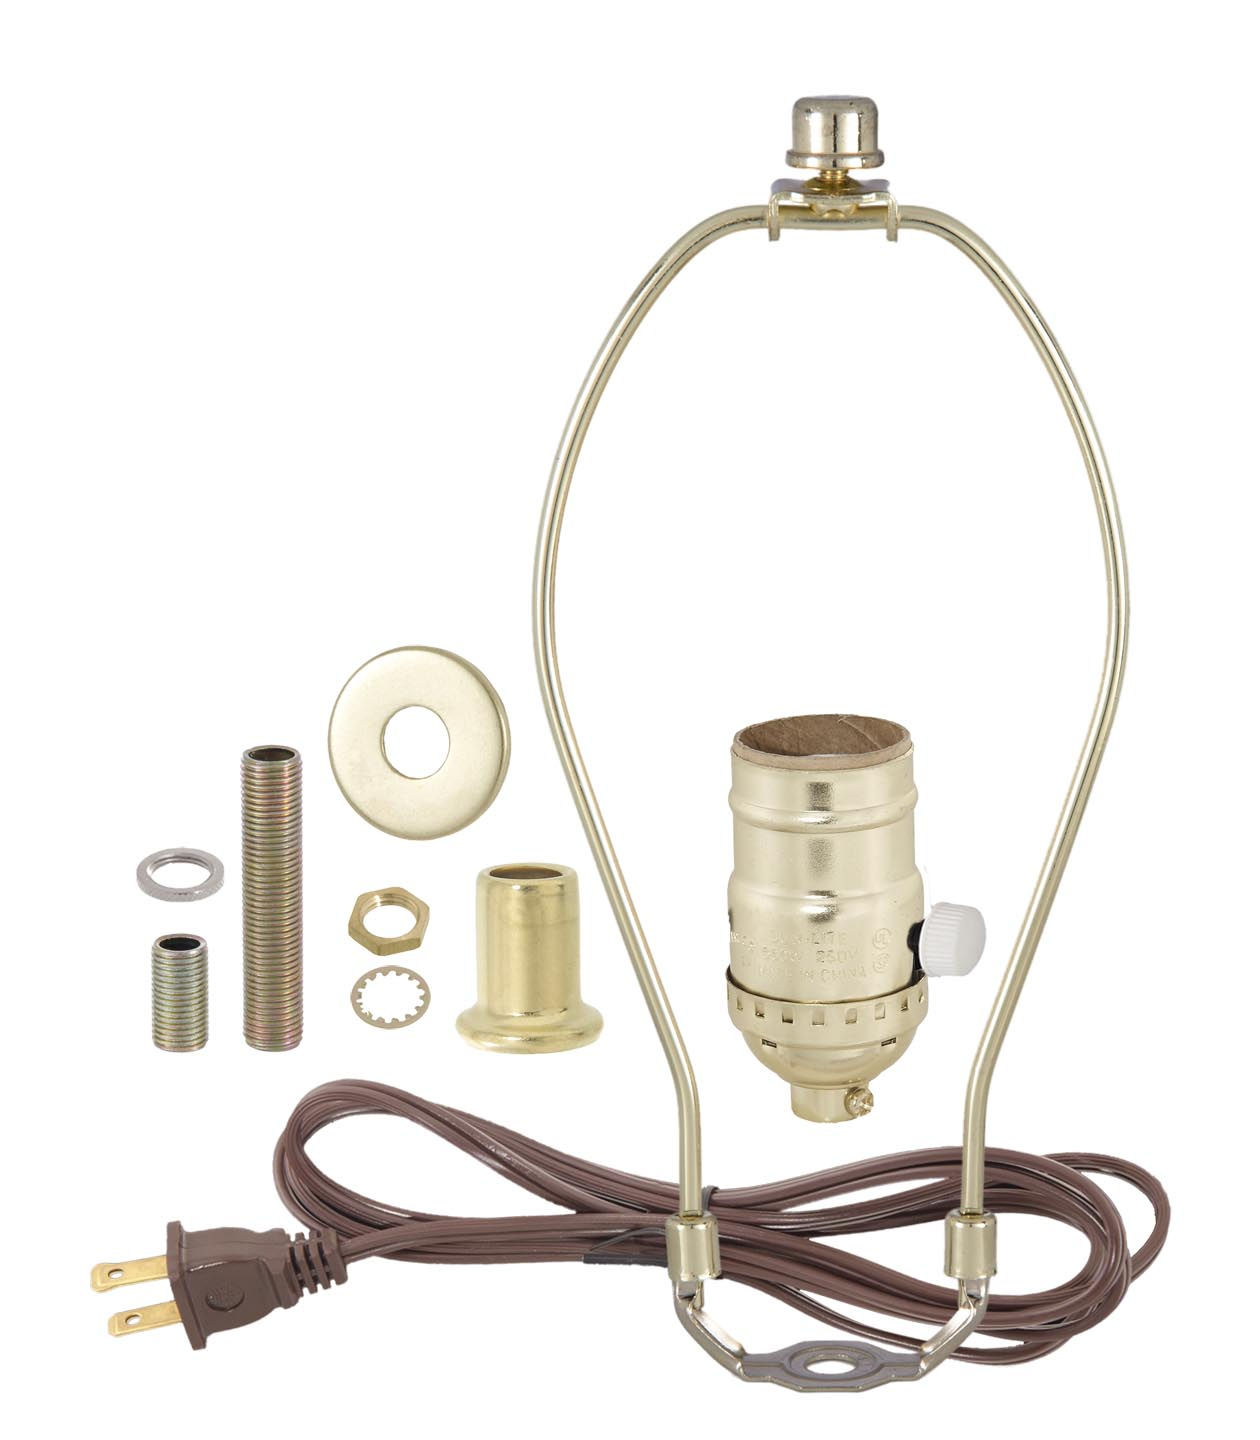 Brass table lamp wiring kit with full range dimmer socket 30554p10 brass table lamp wiring kit with full range dimmer socket 8 ft 182 spt 1 cord set lamp harp finial riser nut 58 inch nipple 2 inch nipple greentooth Image collections